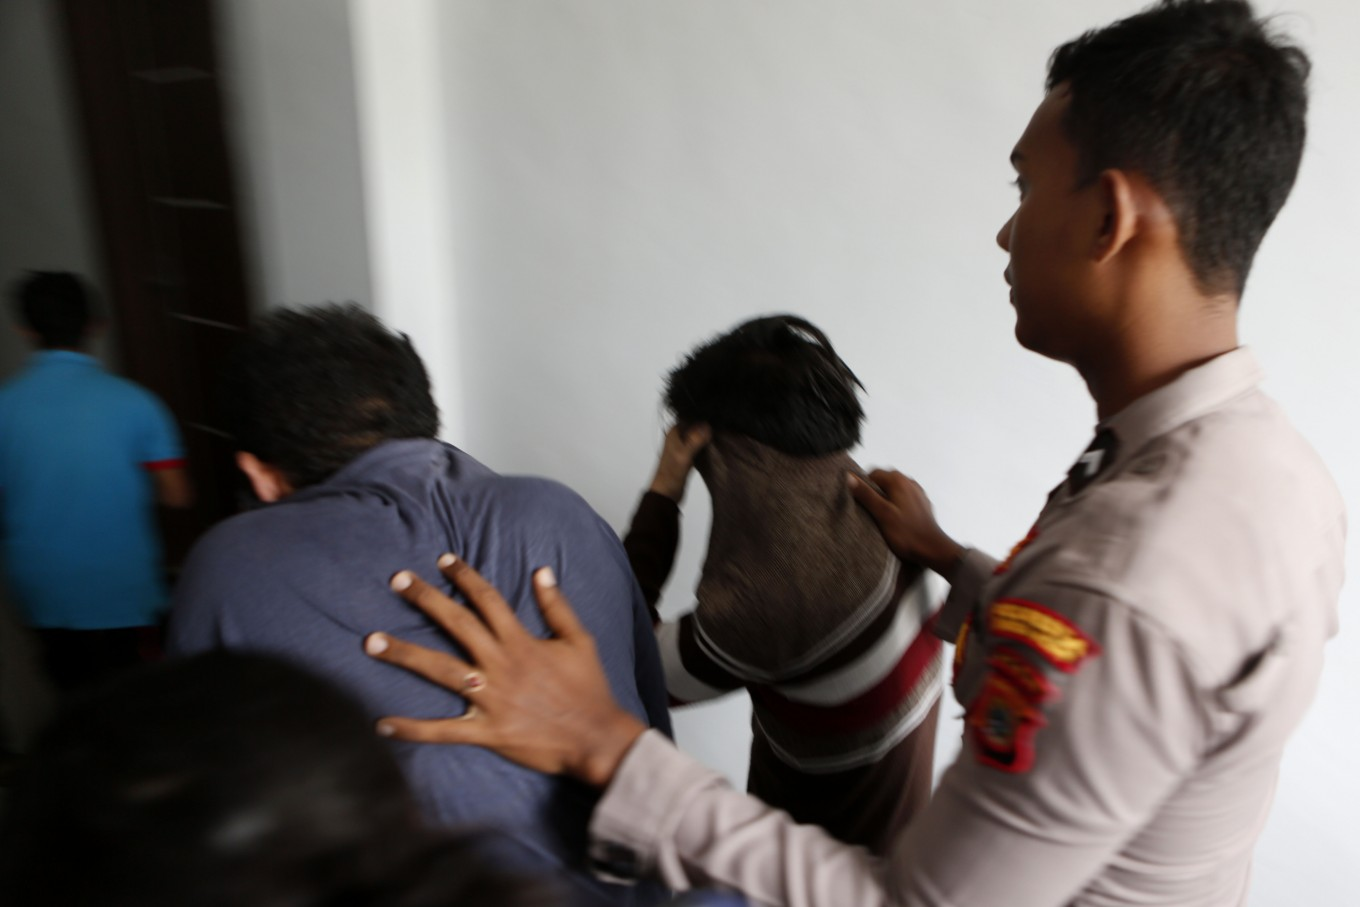 Activists condemn sentence of caning for gay couple in Aceh